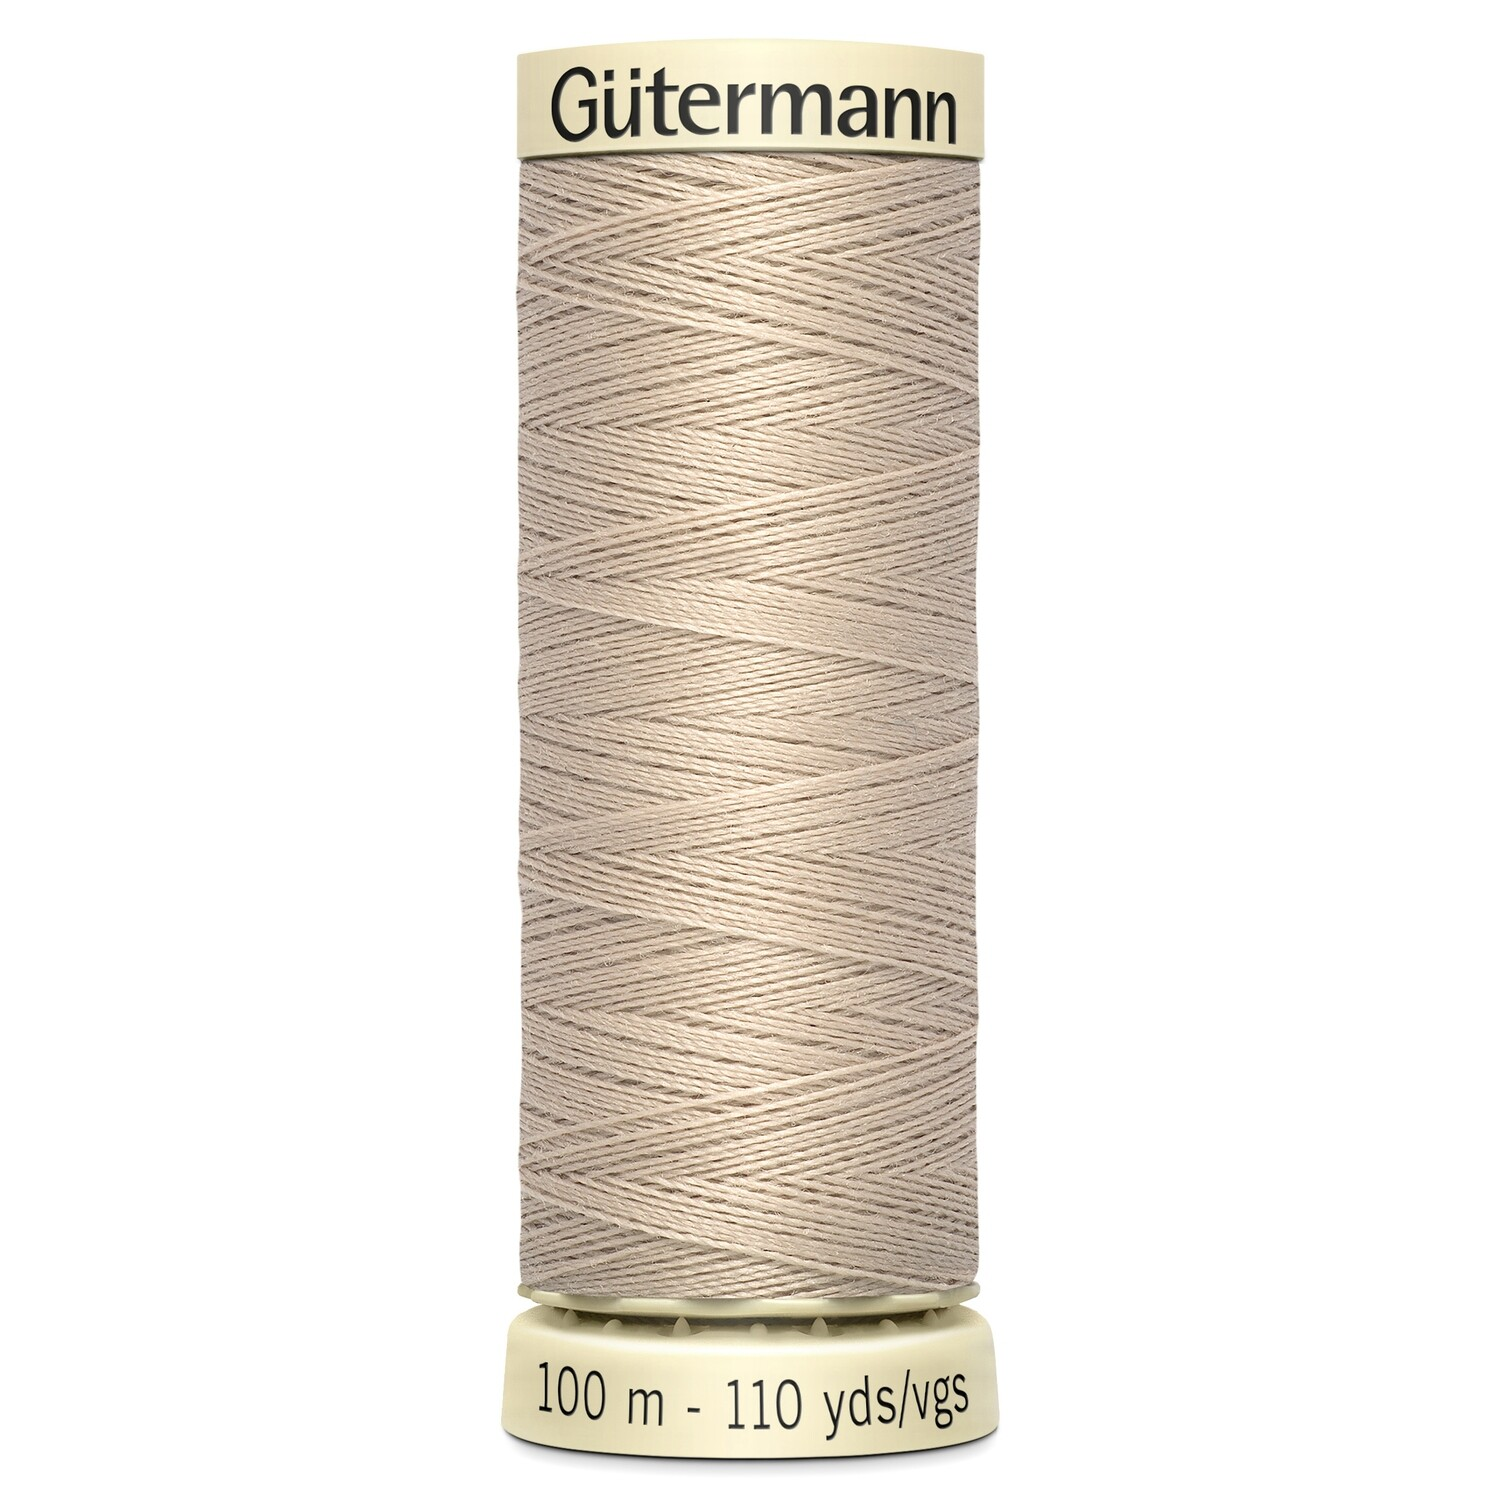 Gutermann Sew-All thread 722